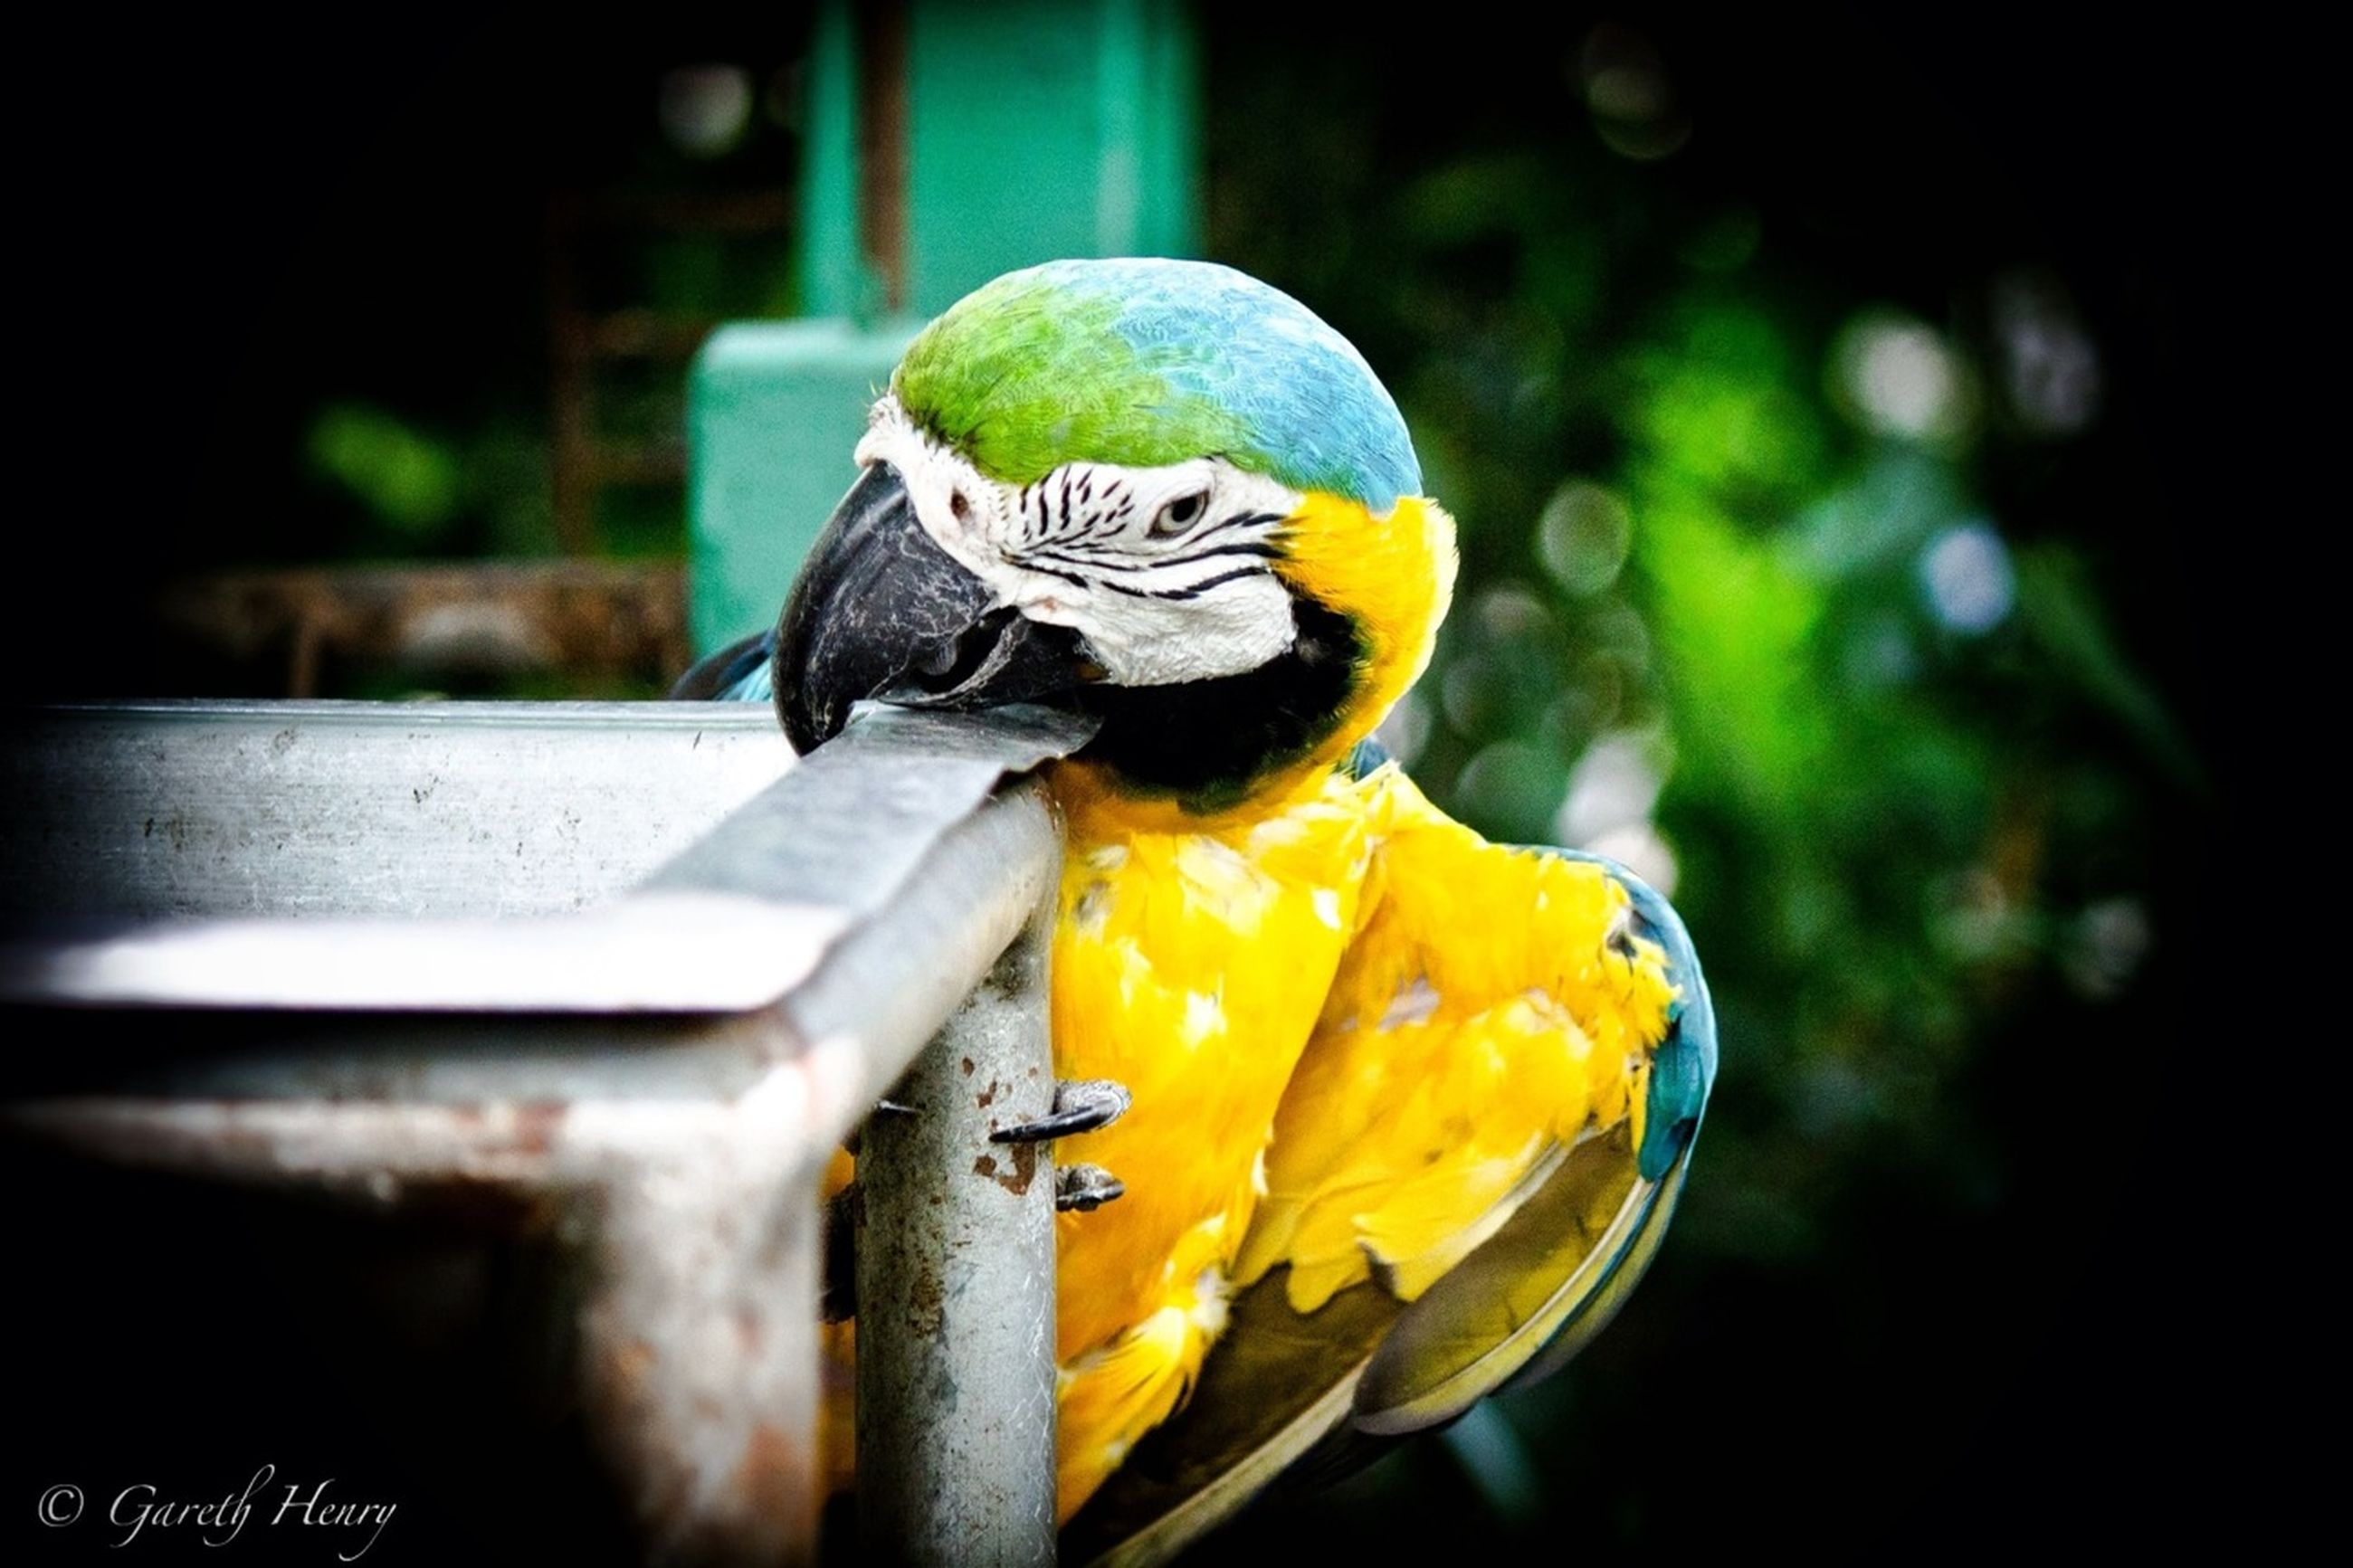 bird, focus on foreground, animal themes, one animal, animals in the wild, yellow, close-up, wildlife, beak, parrot, animal representation, multi colored, perching, art and craft, no people, outdoors, creativity, animal head, art, blue